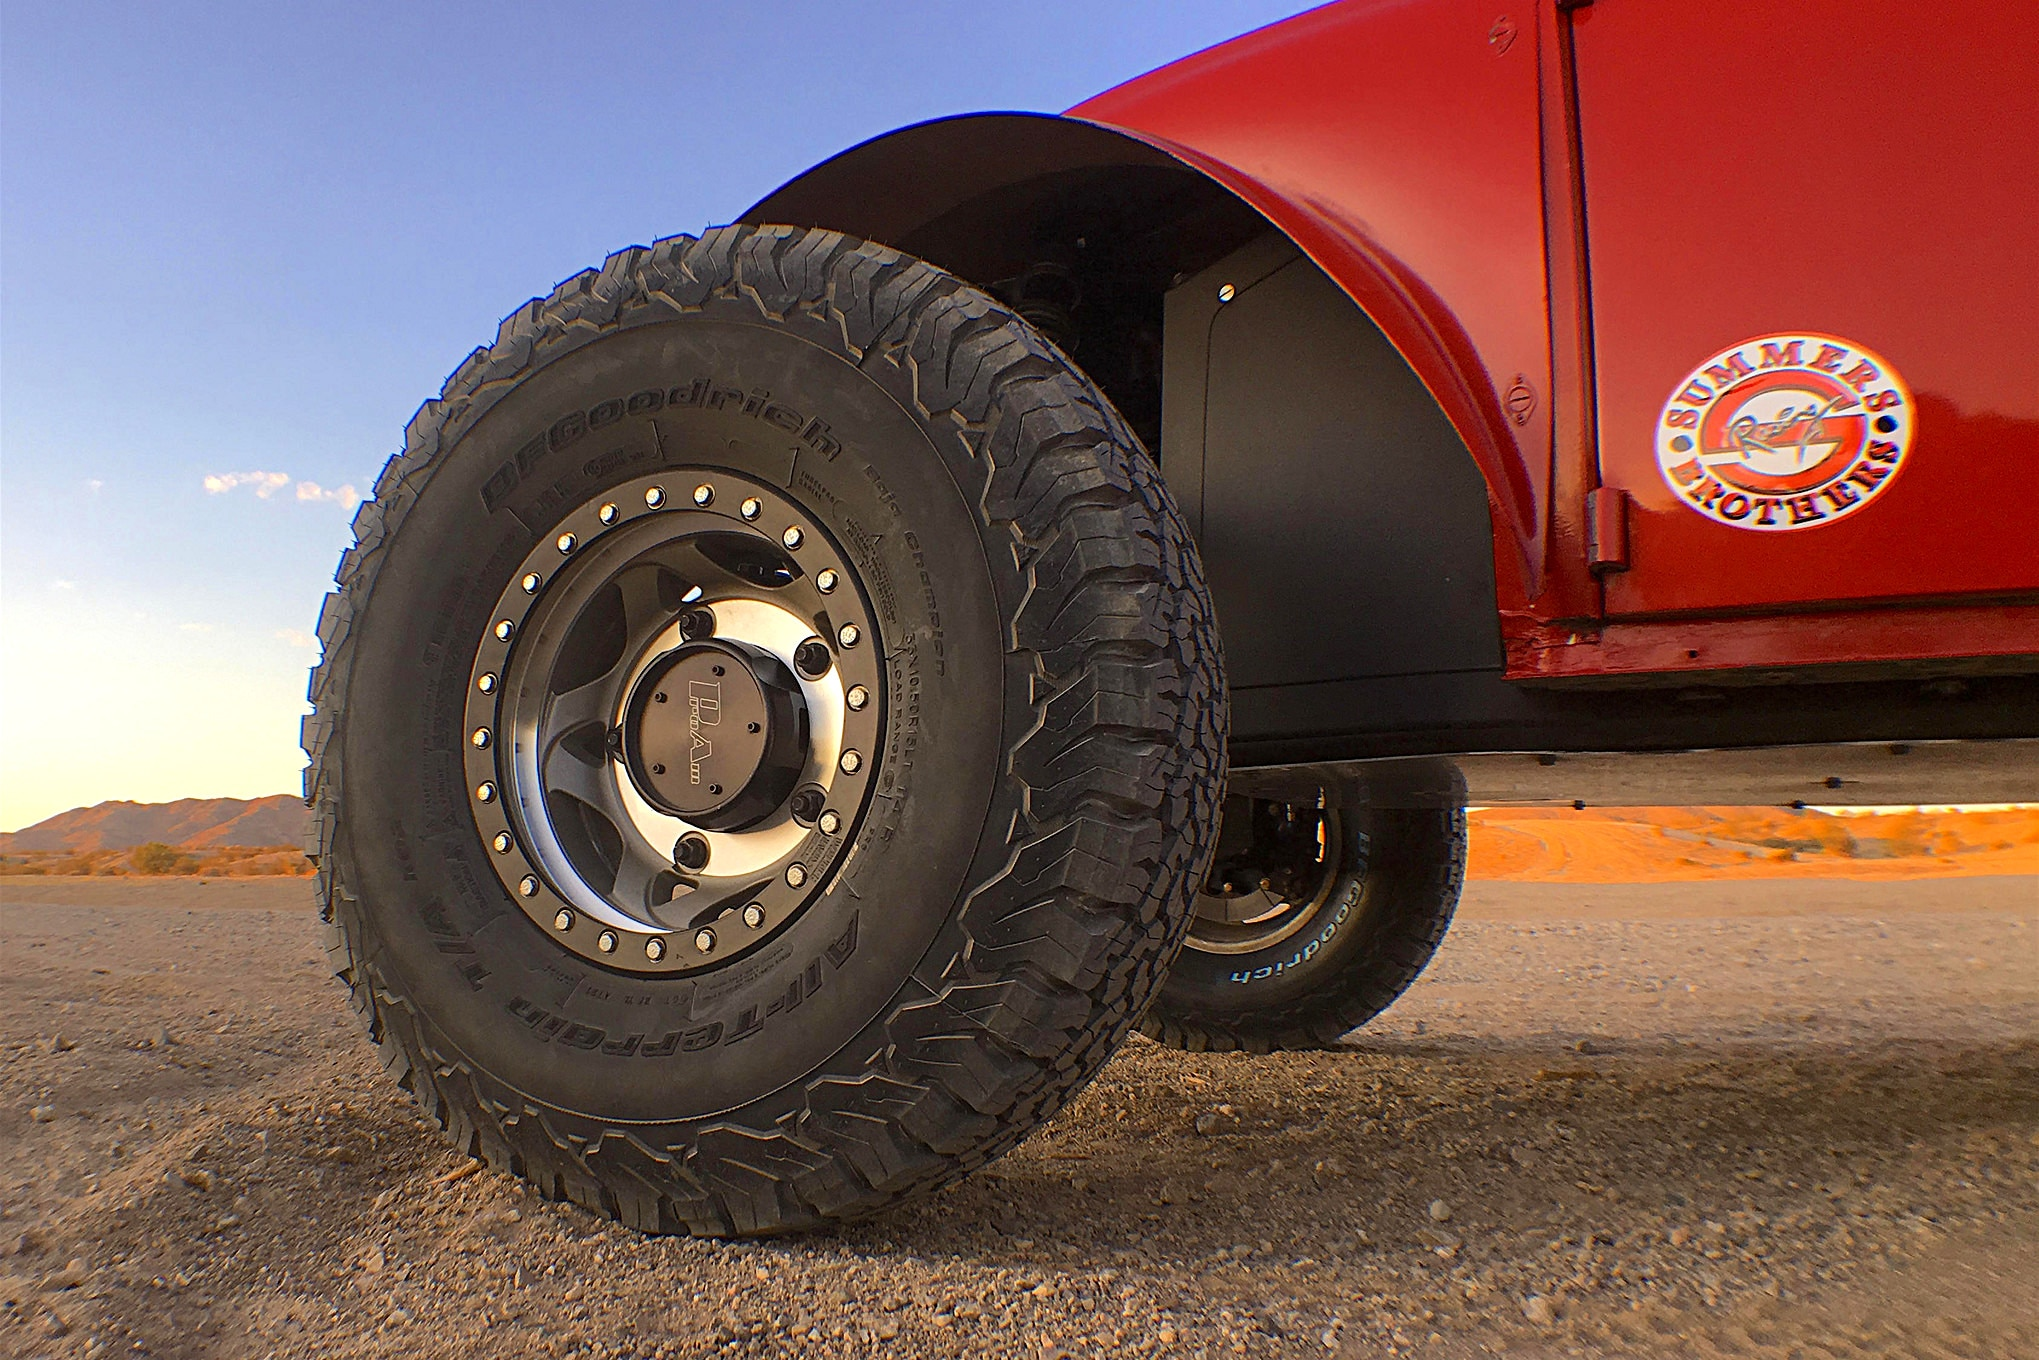 No bigs 'n' littles for this Bug as 33-inch BFGoodrich KO2's have been wrapped around 15-inch Walker Evans Racing beadlock wheels.